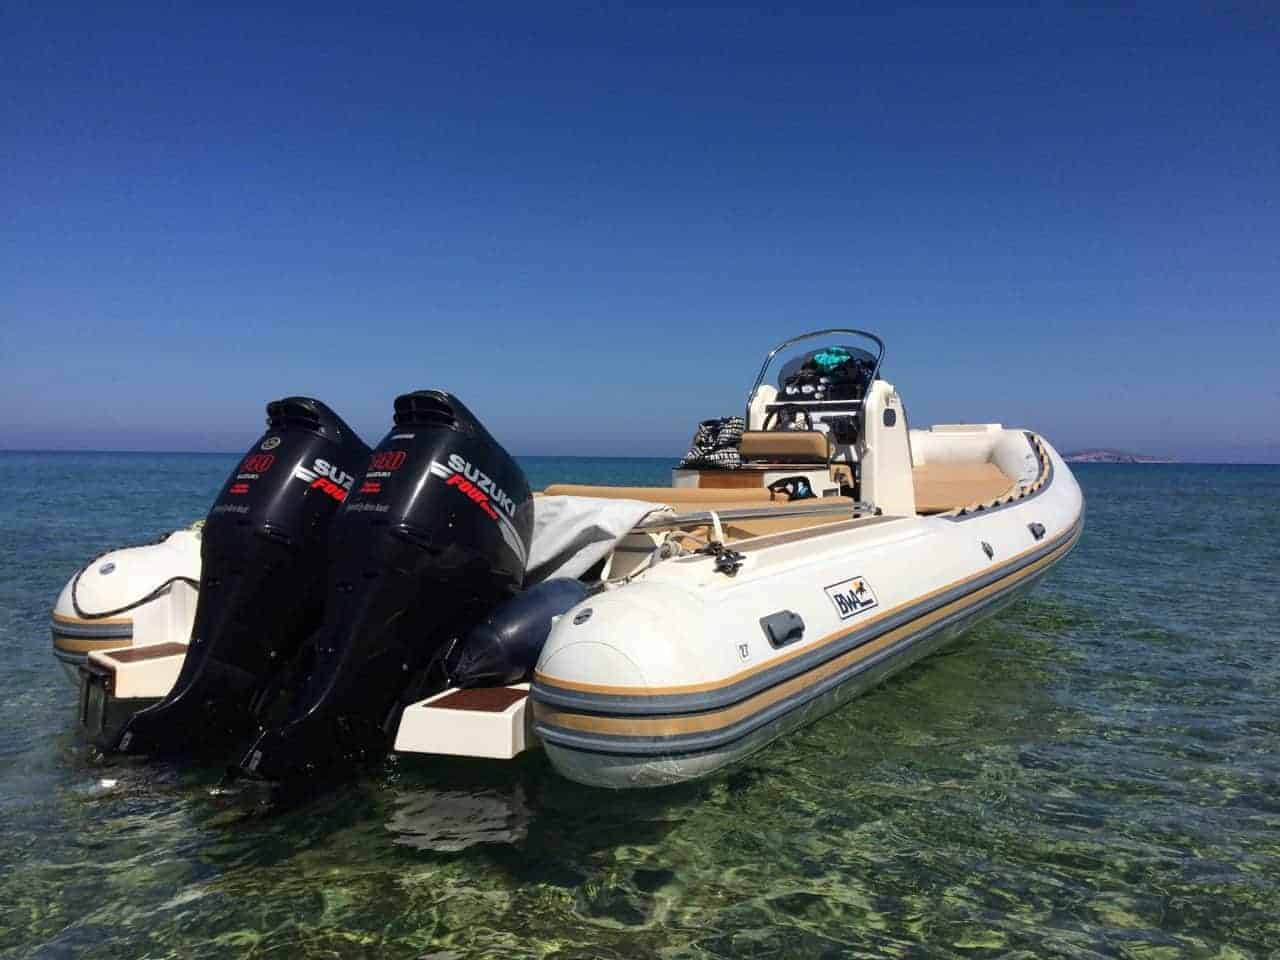 Rent a boat Chania_Notos_Mare_Rent_A_Boat_Chania_Sfakia_280hp